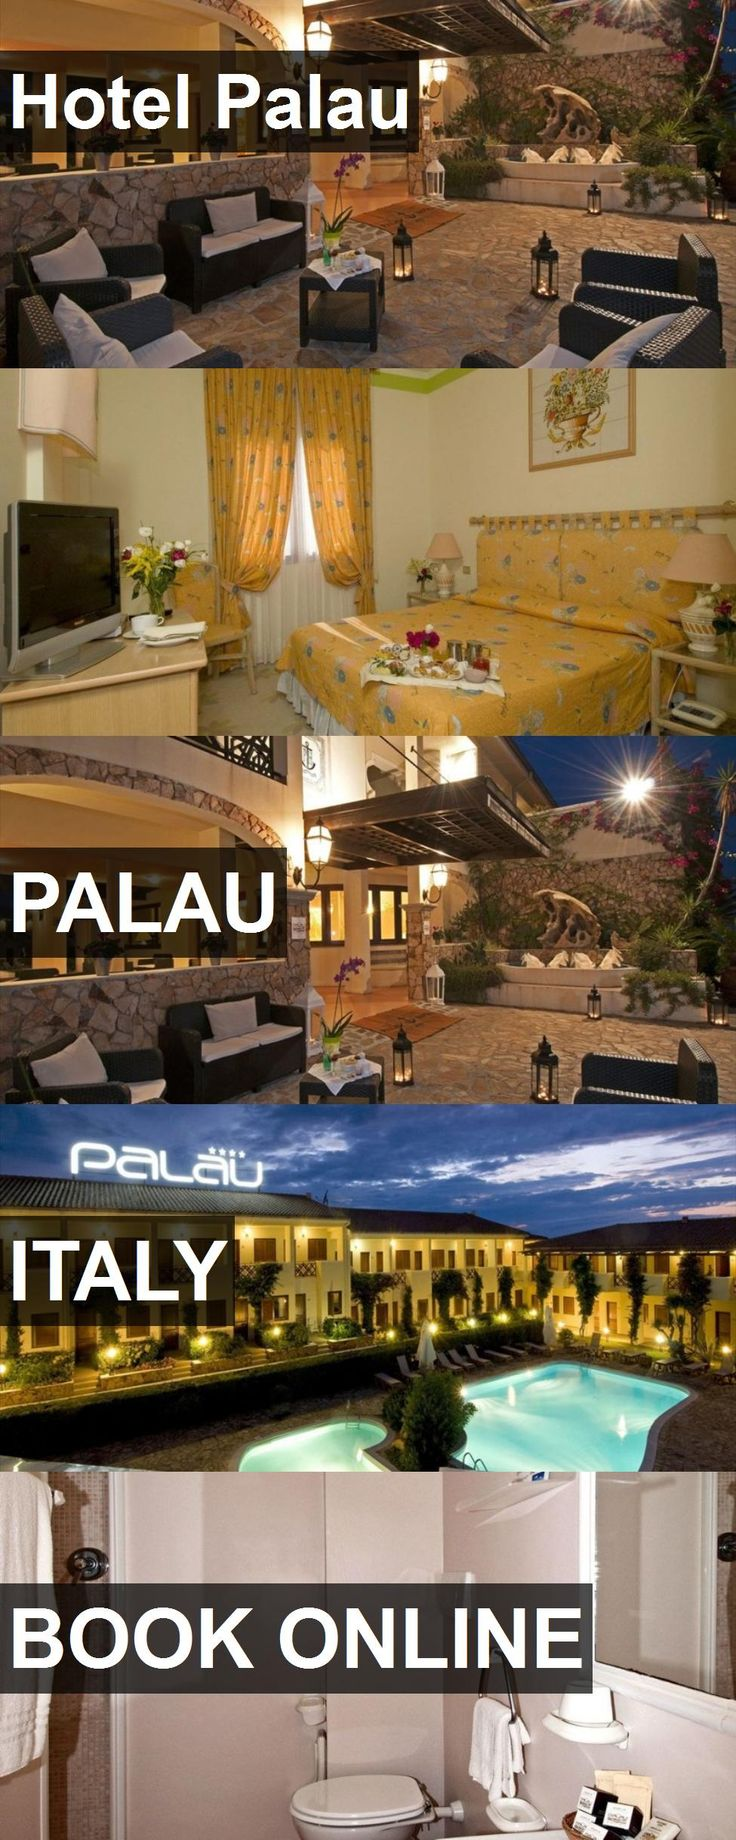 Hotel Palau in Palau, Italy. For more information, photos, reviews and best prices please follow the link. #Italy #Palau #travel #vacation #hotel